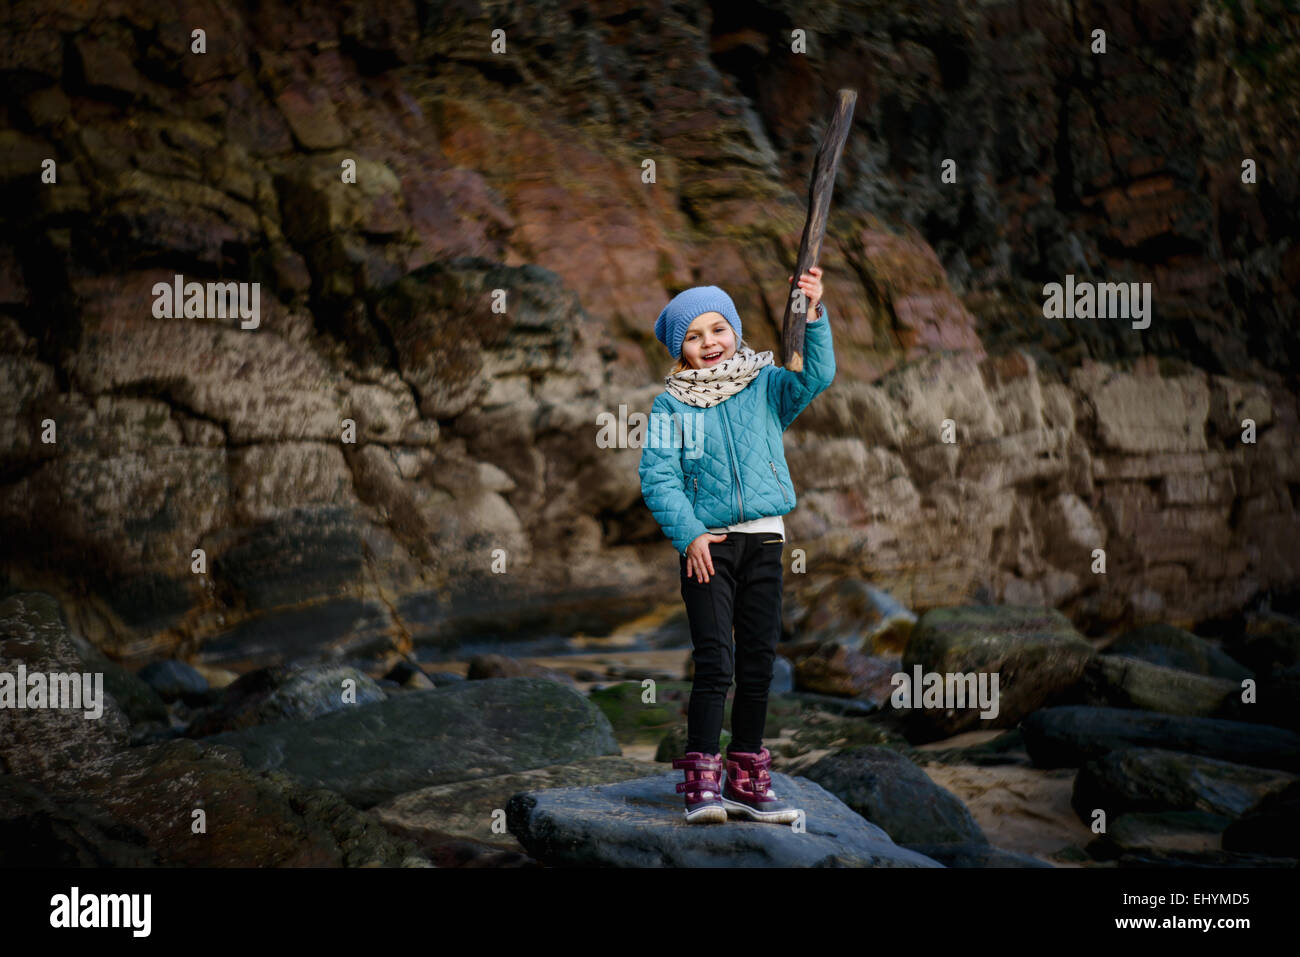 ca85a4351 Girl standing on rock at the beach holding a stick - Stock Image